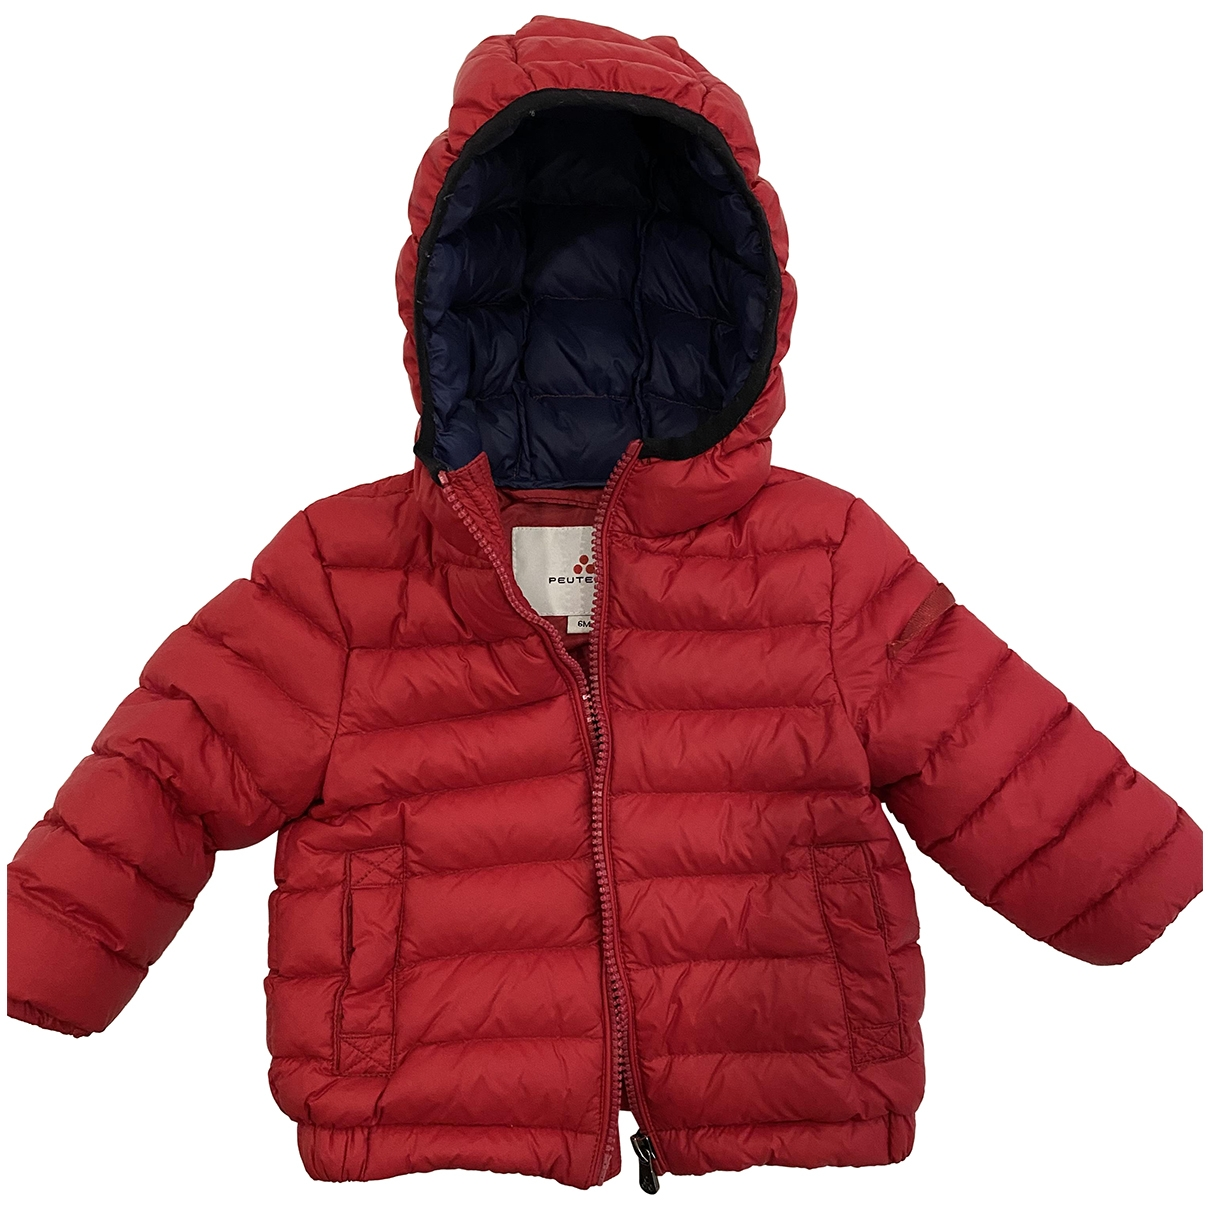 Peuterey \N Red jacket & coat for Kids 6 months - until 26.5 inches UK